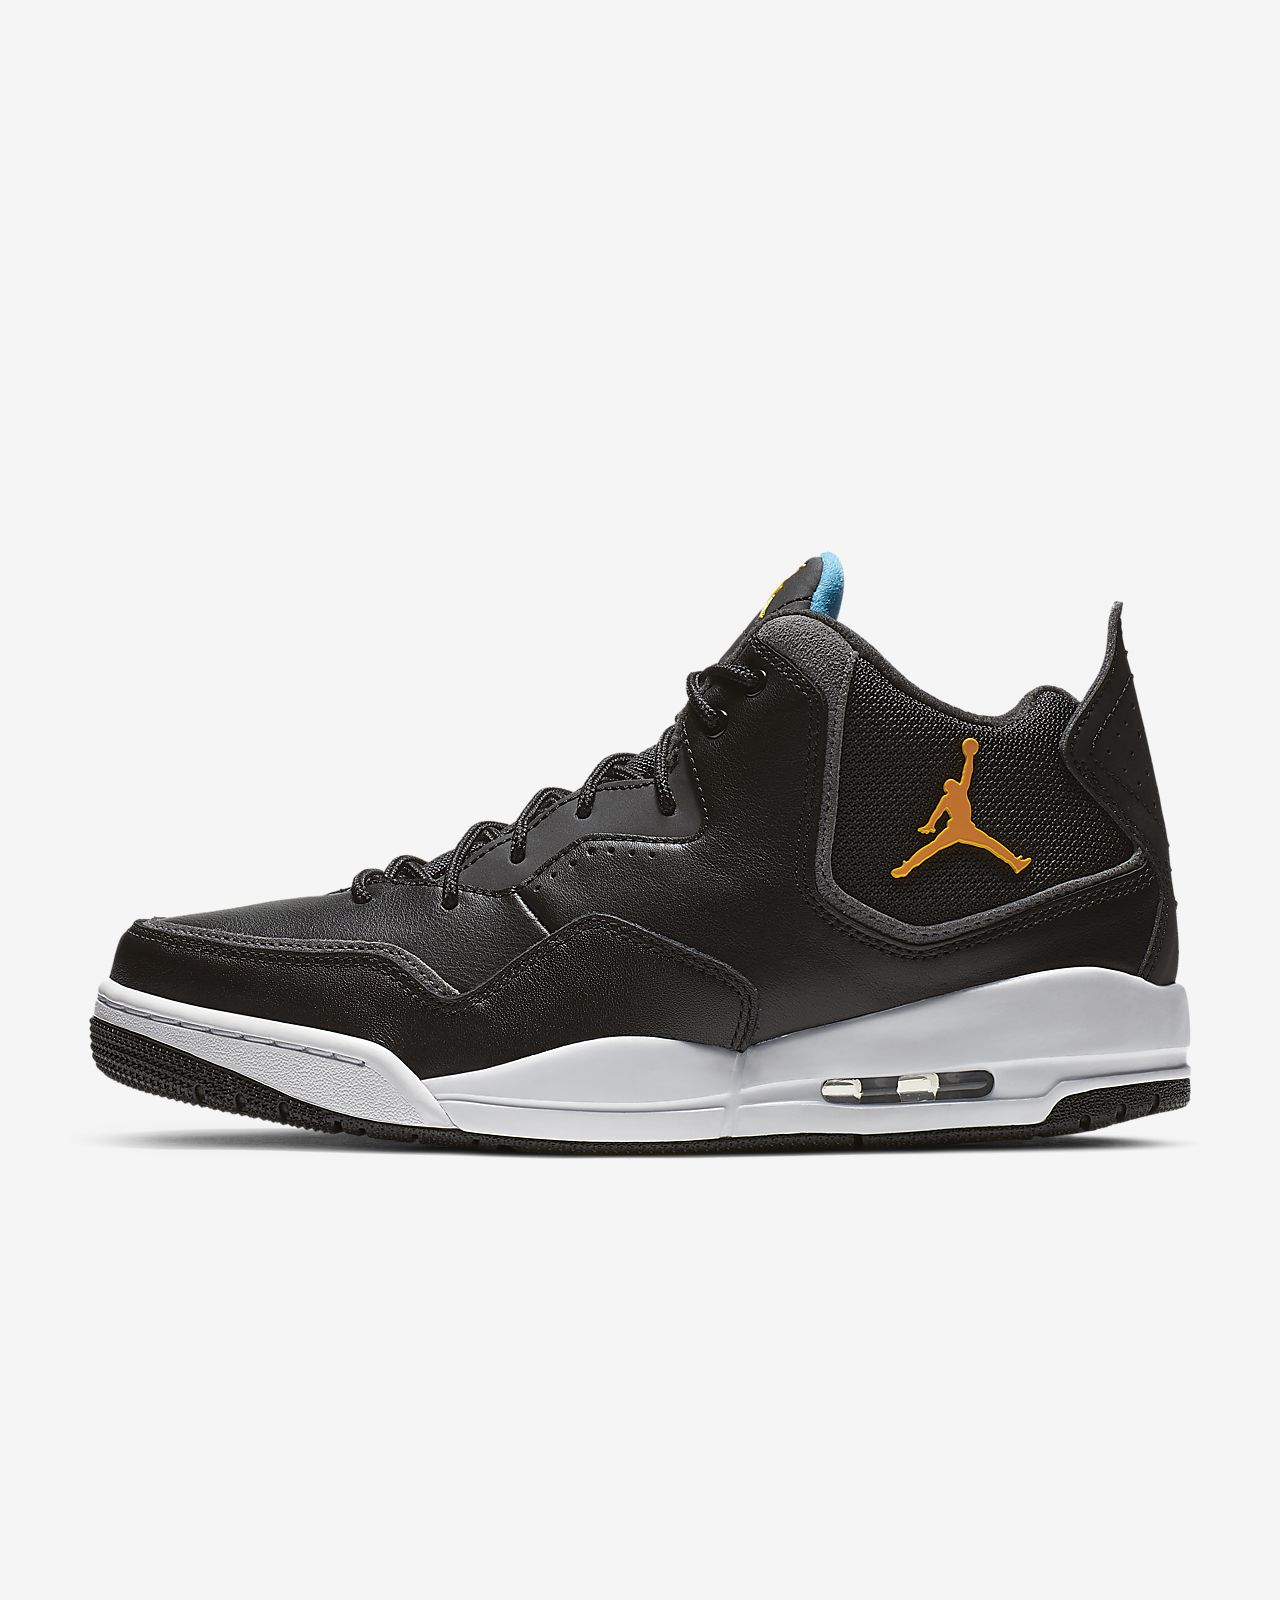 8ec3483634c Jordan Courtside 23 Men's Shoe. Nike.com AU